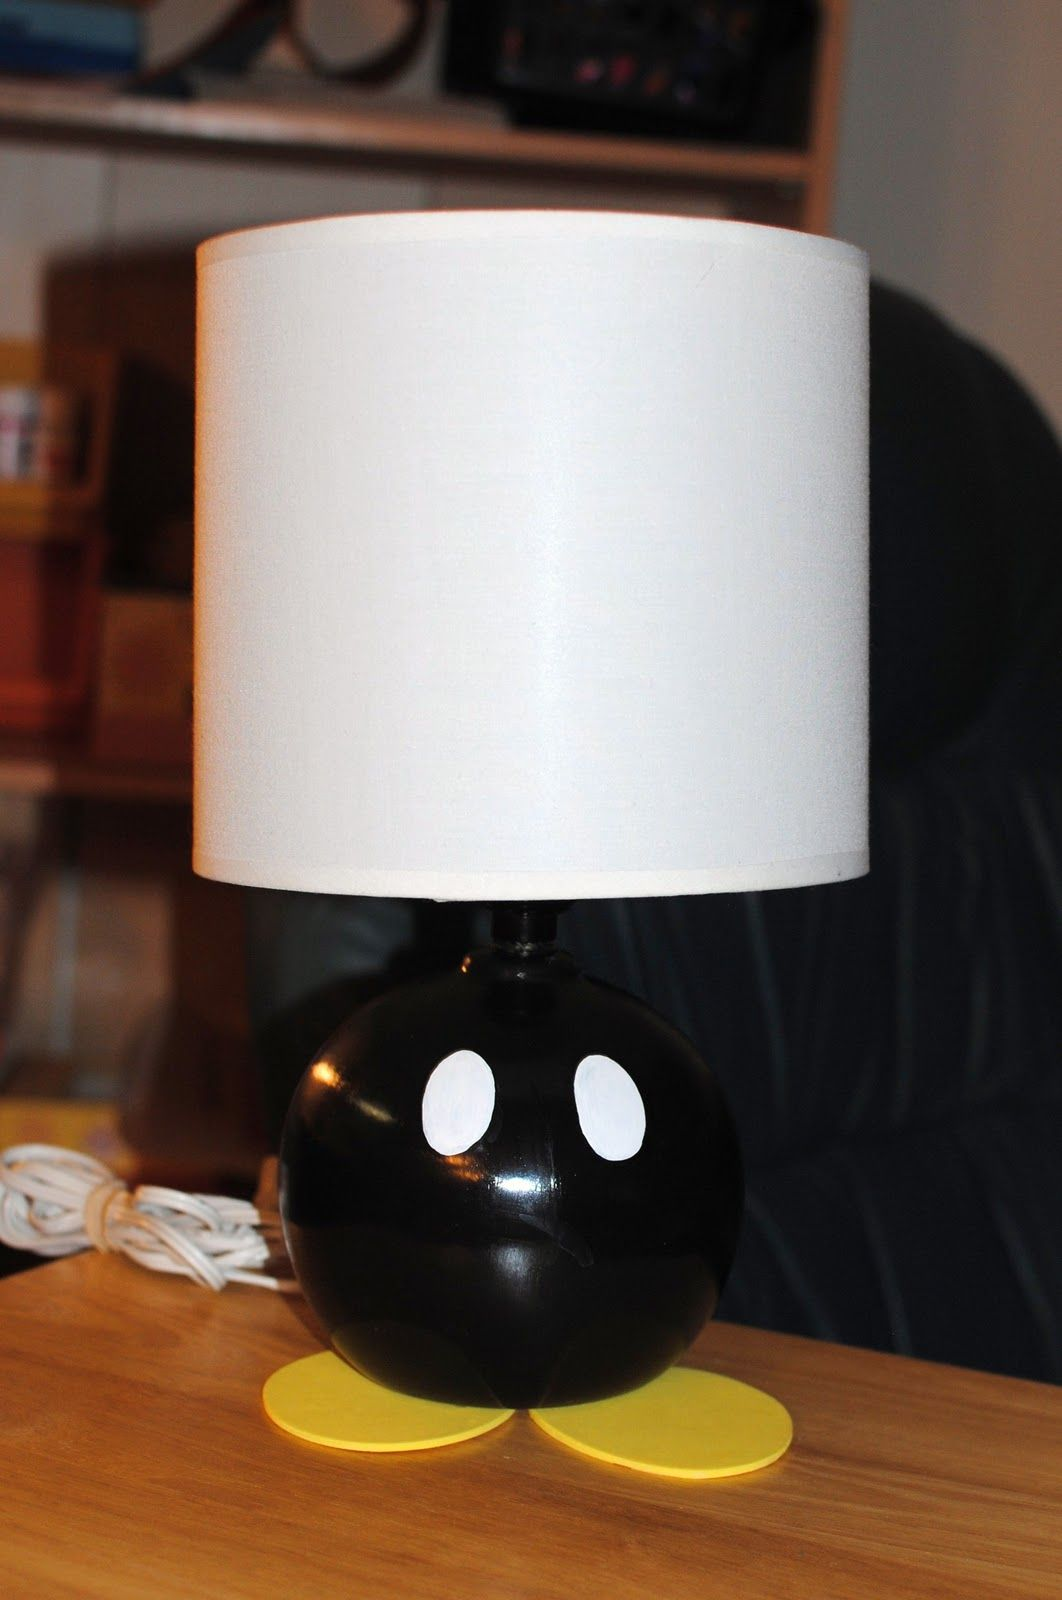 Bobomb Lamp Random Stuffs u Things Pinterest Game rooms Room